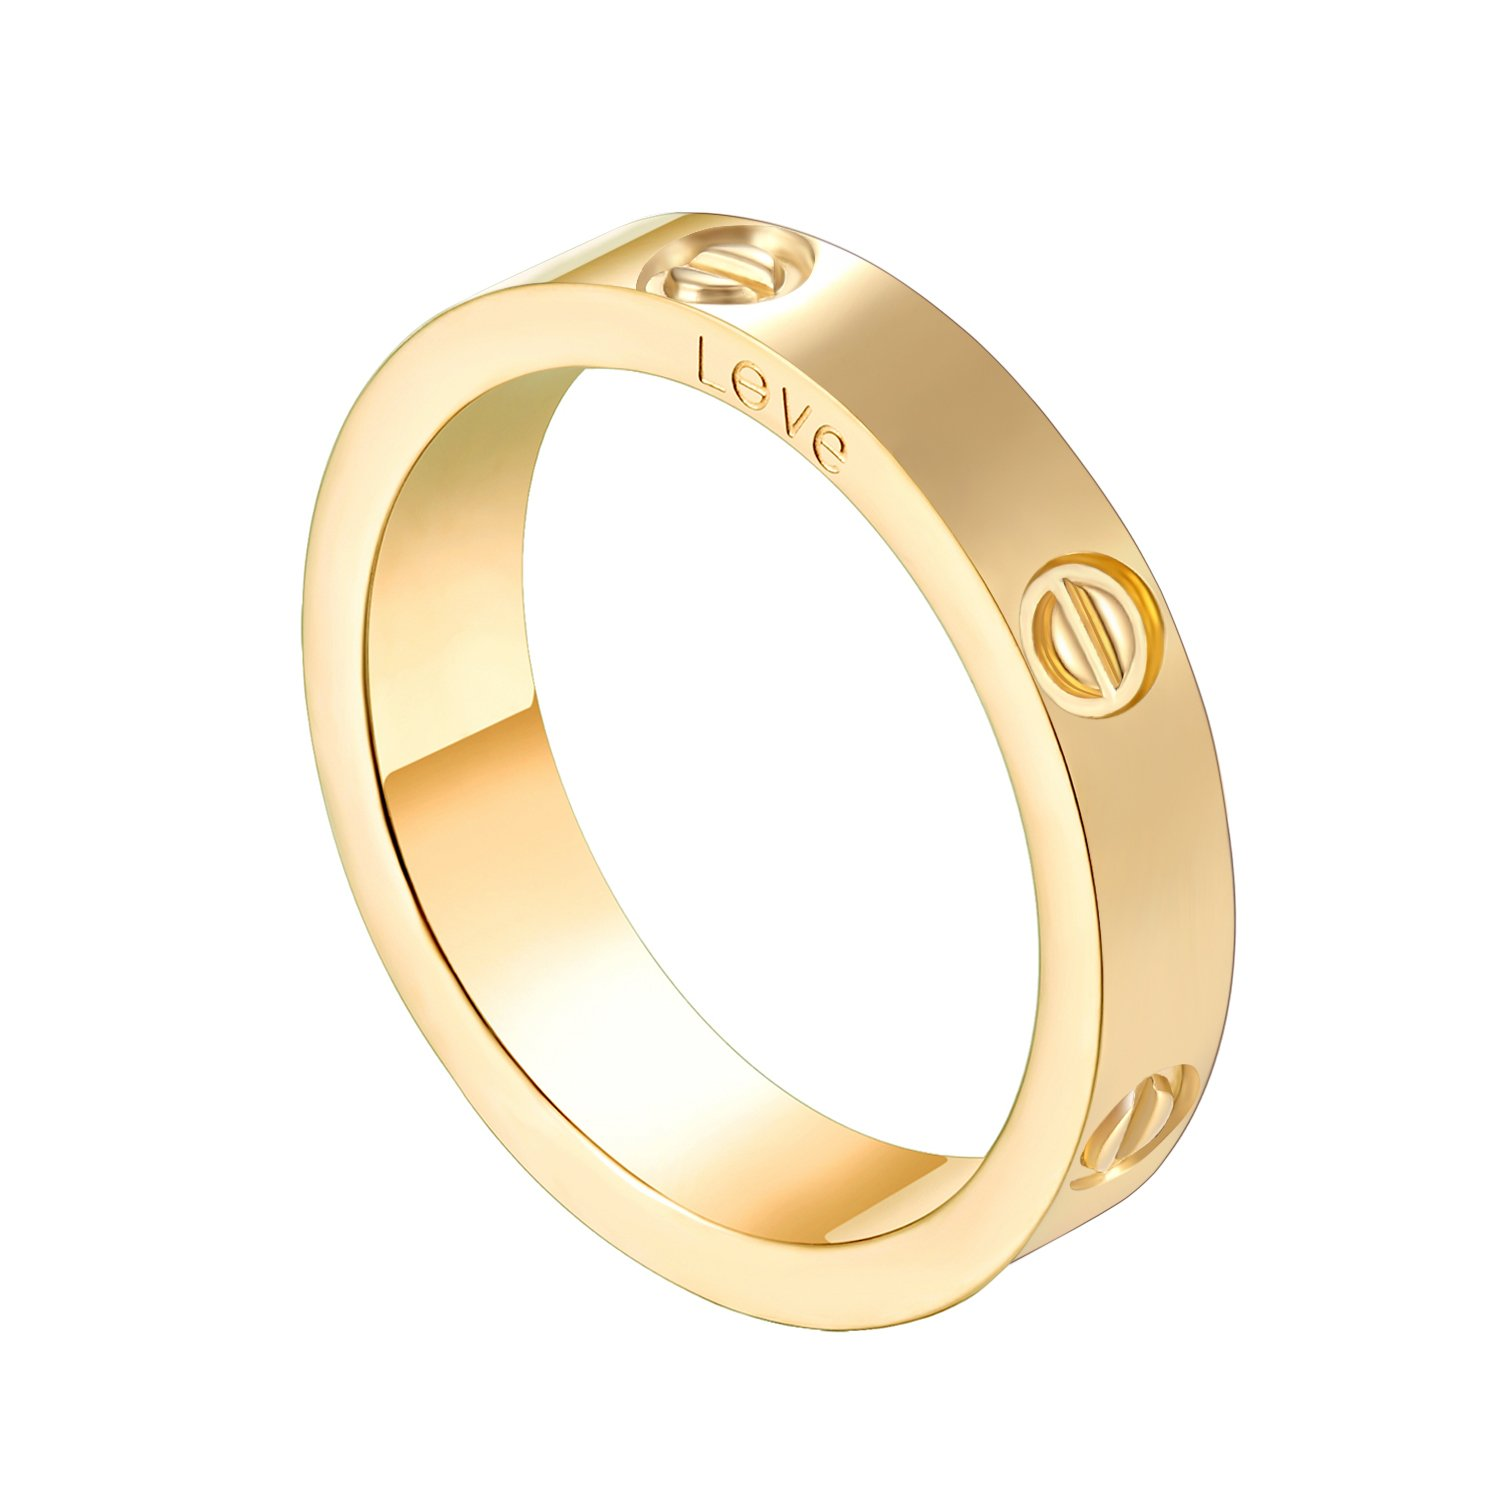 Z.RACLE 4mm Love Rings for Women with Screw Design Best Gifts for Love Gold - 8